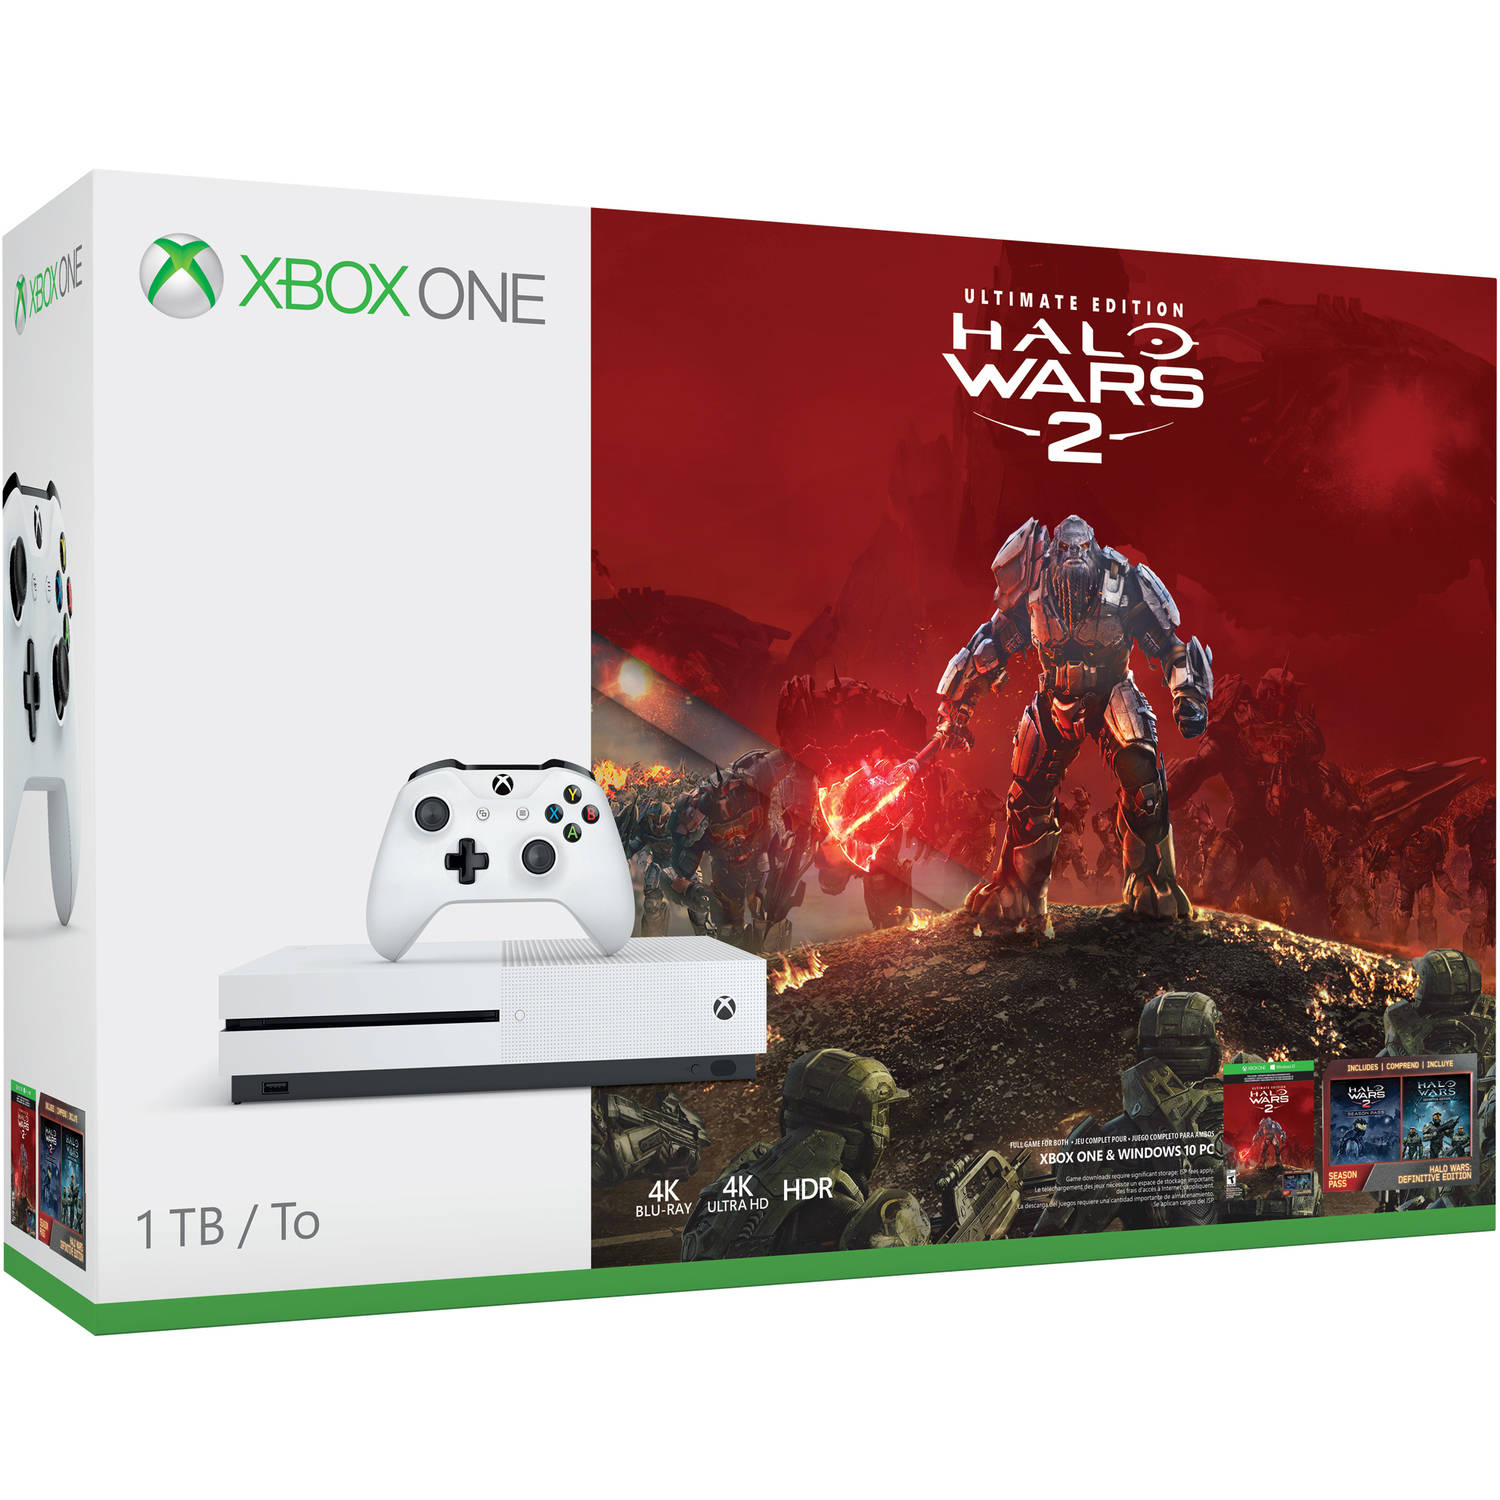 Microsoft Xbox One S 1TB Halo Wars 2 Bundle, White, 234-00128